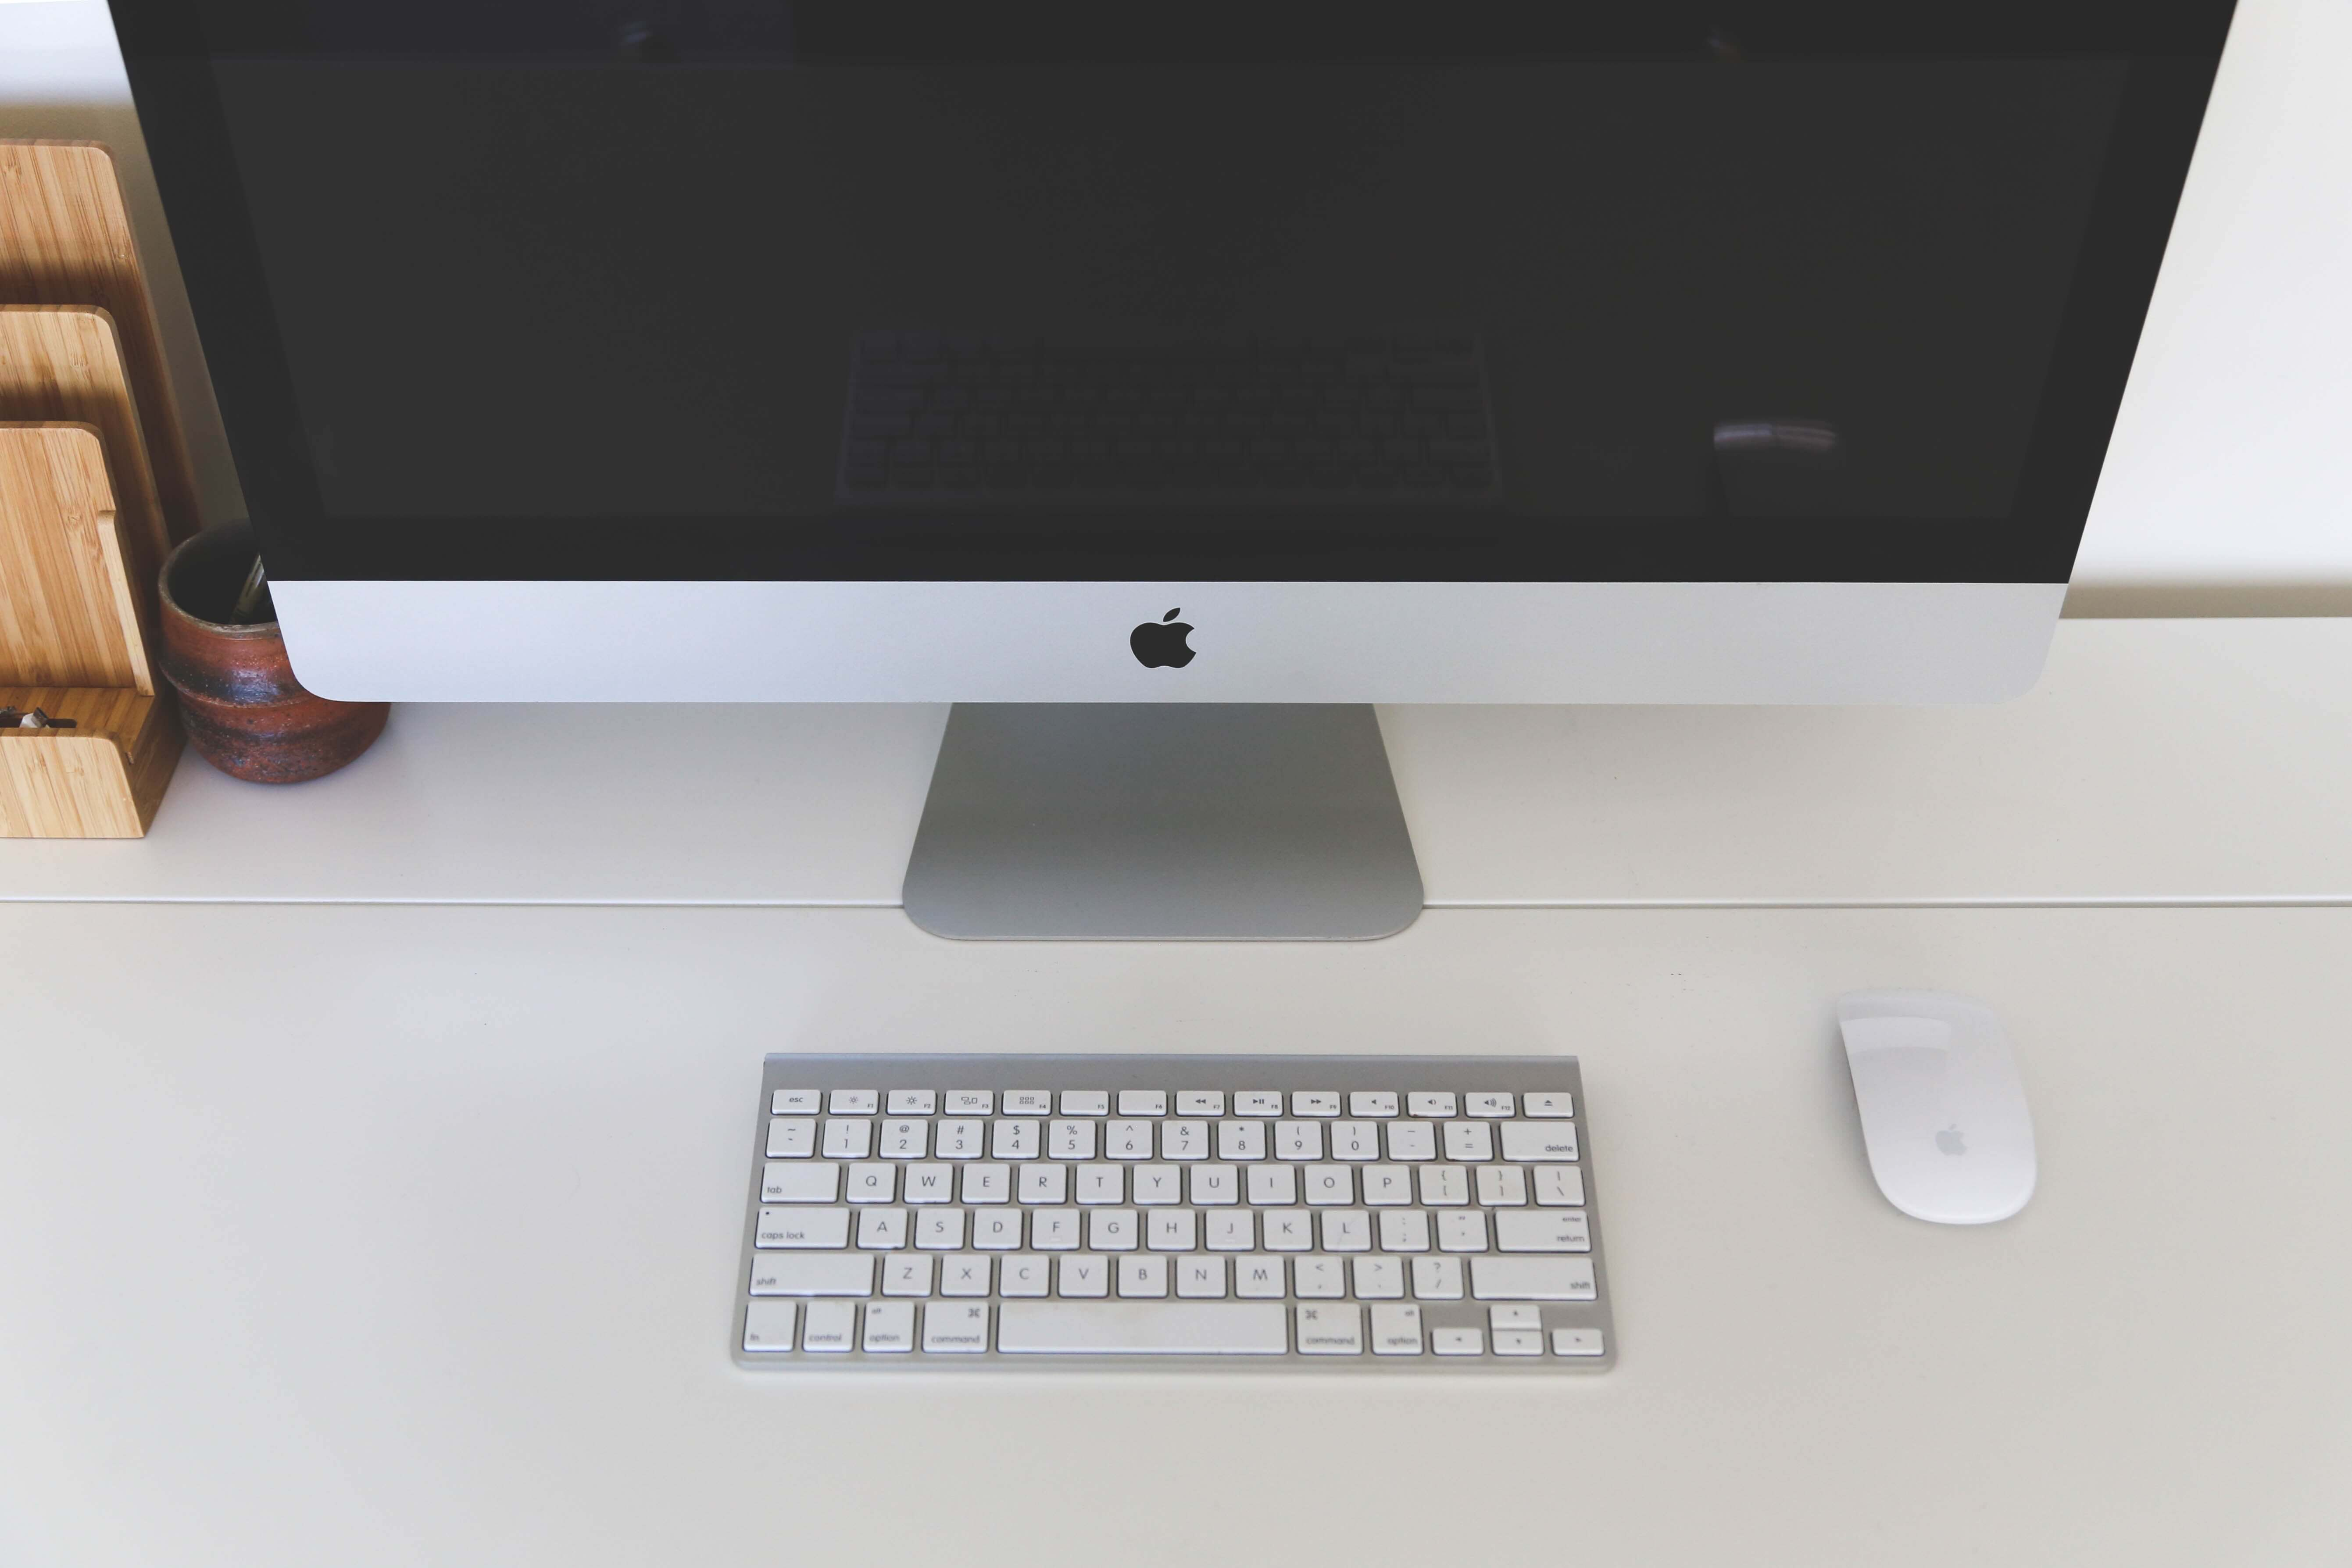 apple-computer-desk-7057.jpg